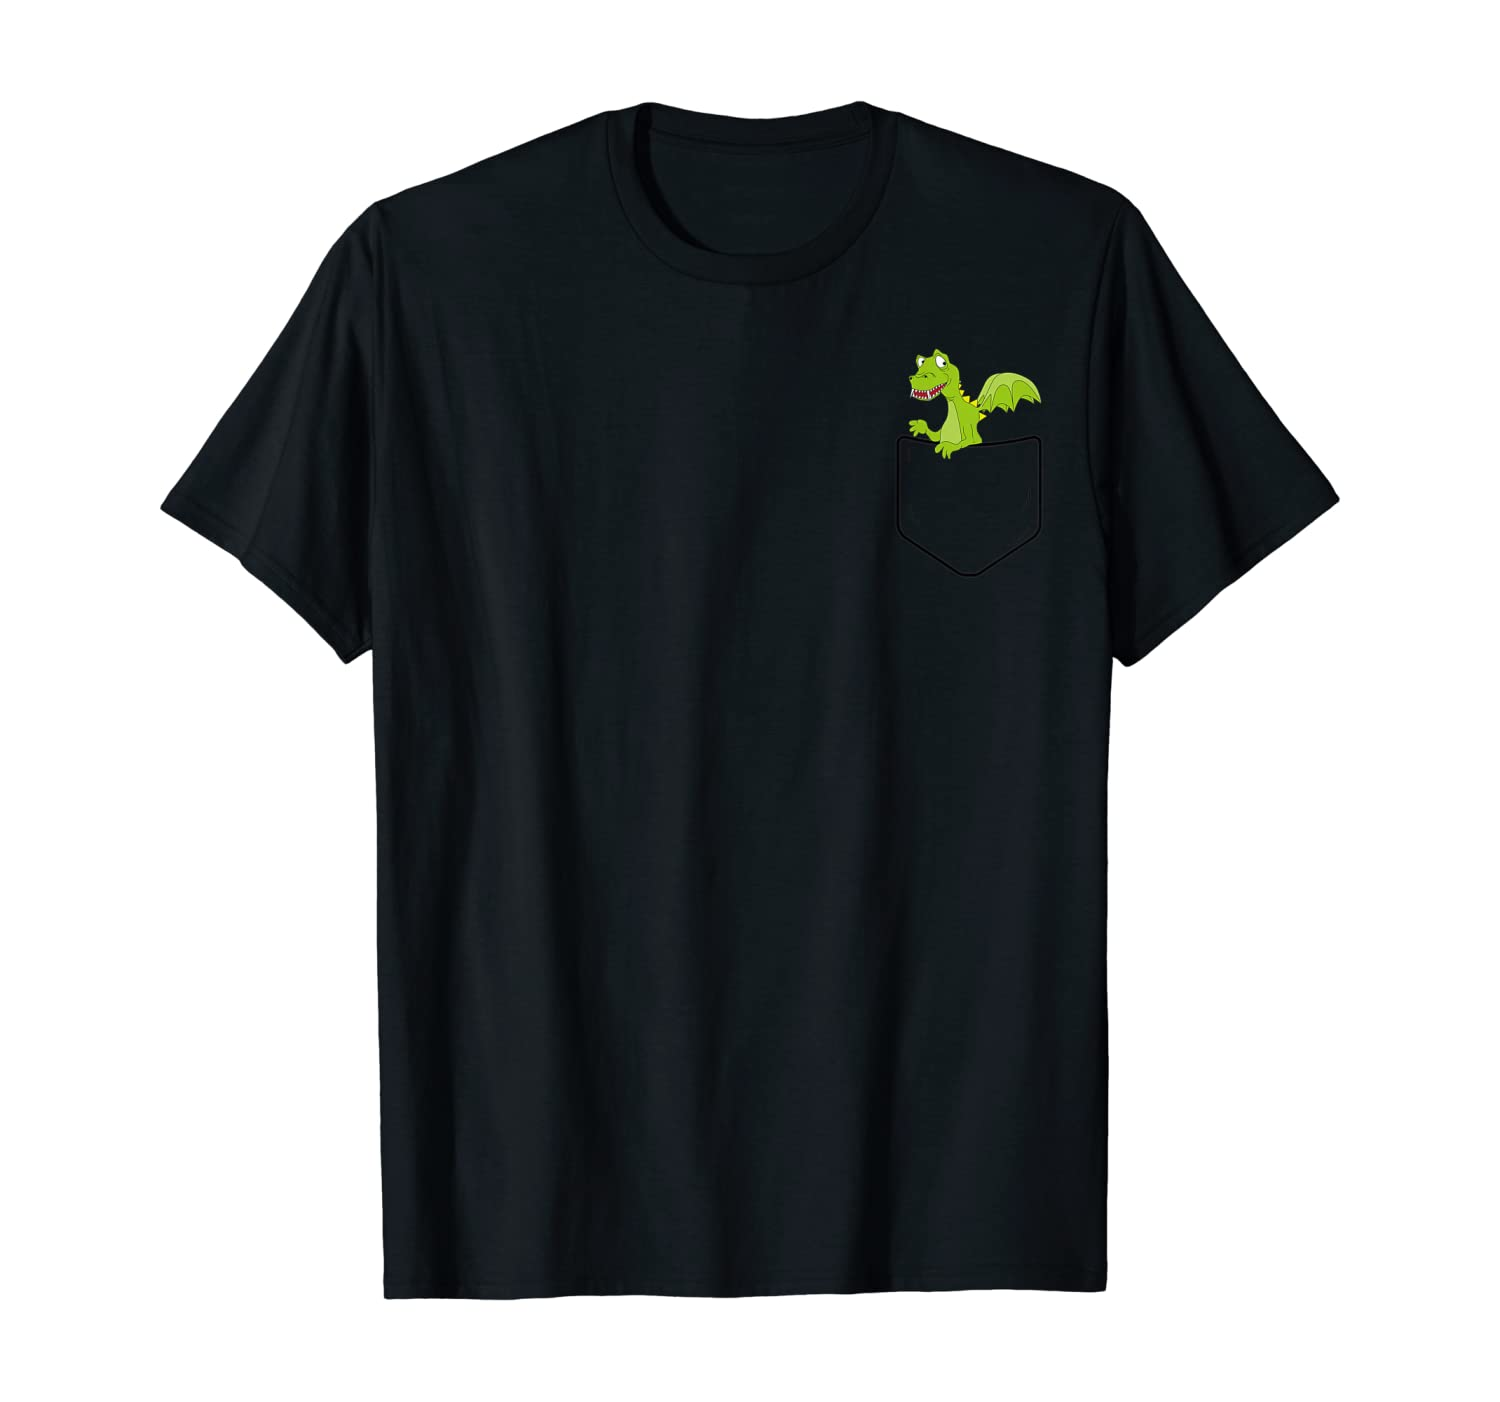 Cool Dragon in Your Pocket - Funny Dragons Lover Gift T-Shirt